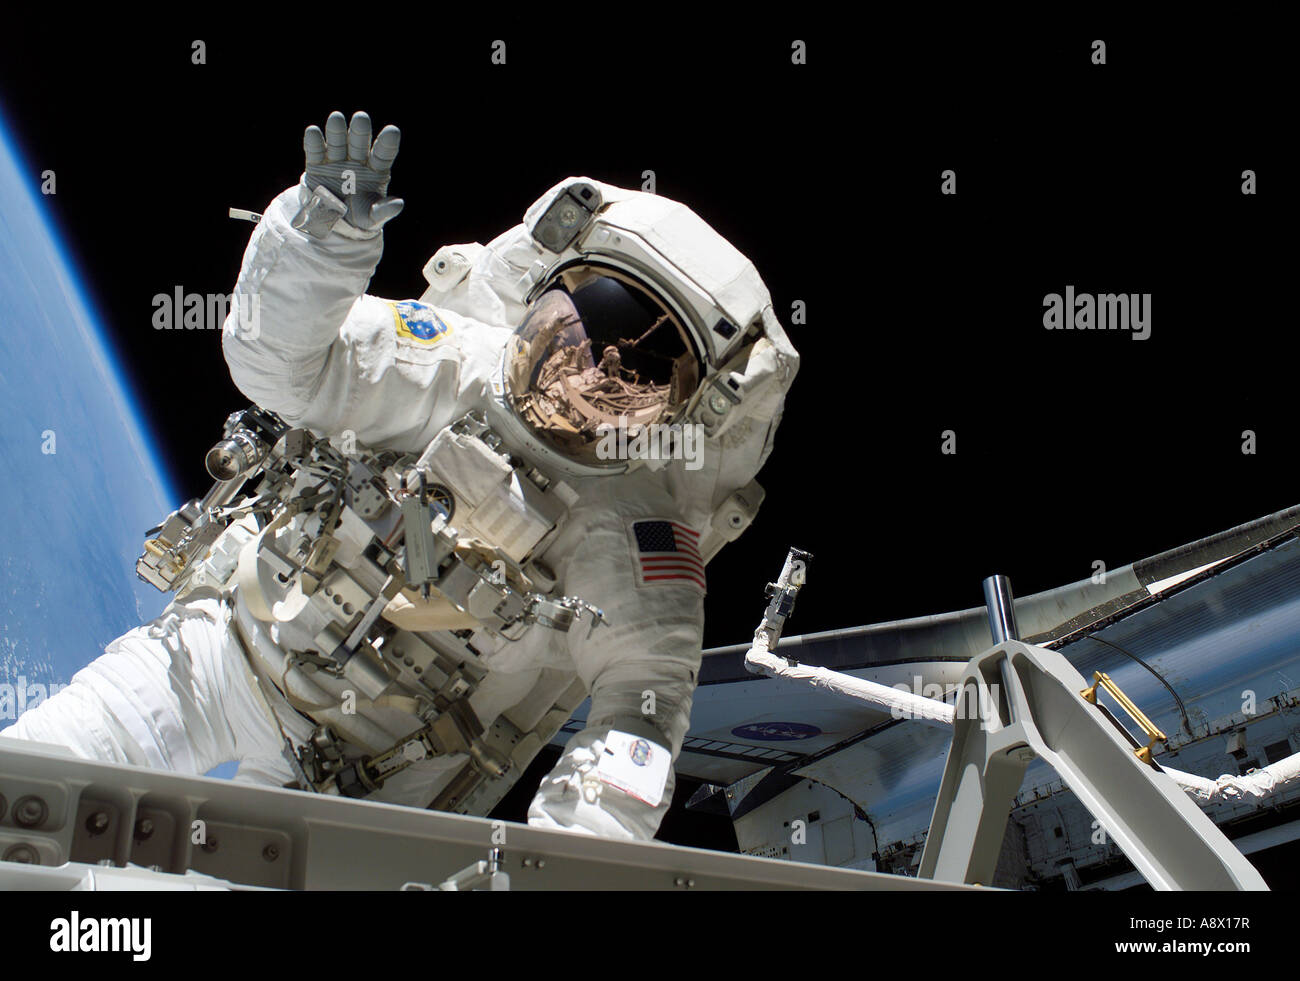 astronaut space walk - photo #14